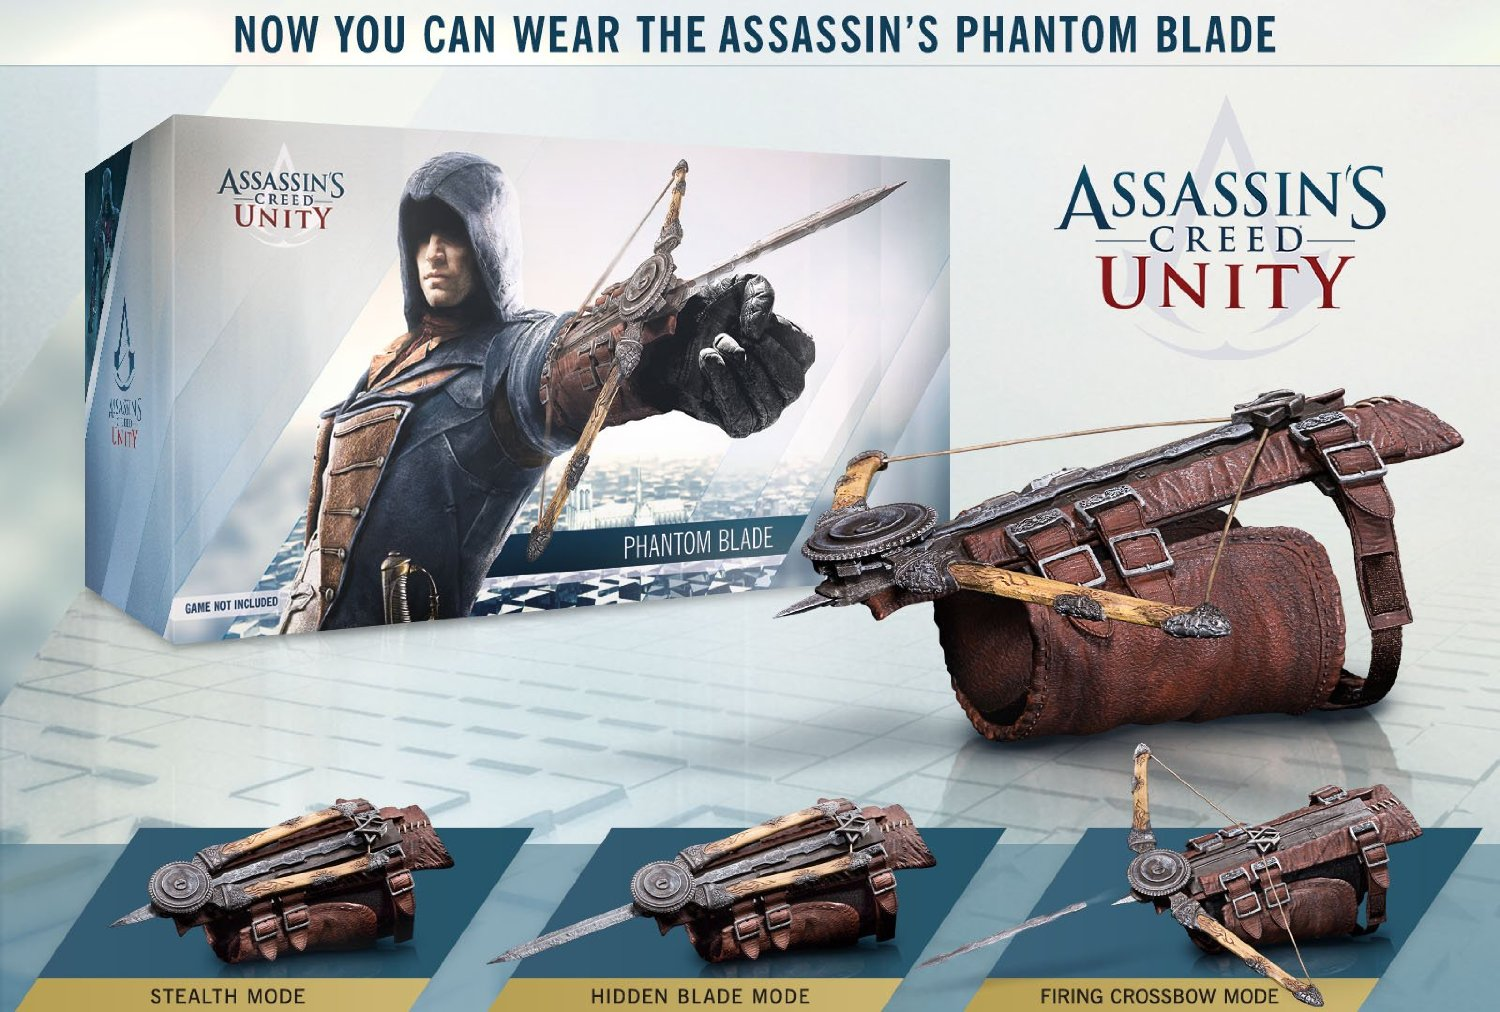 Assassin's Creed Unity Phantom Blade Replica